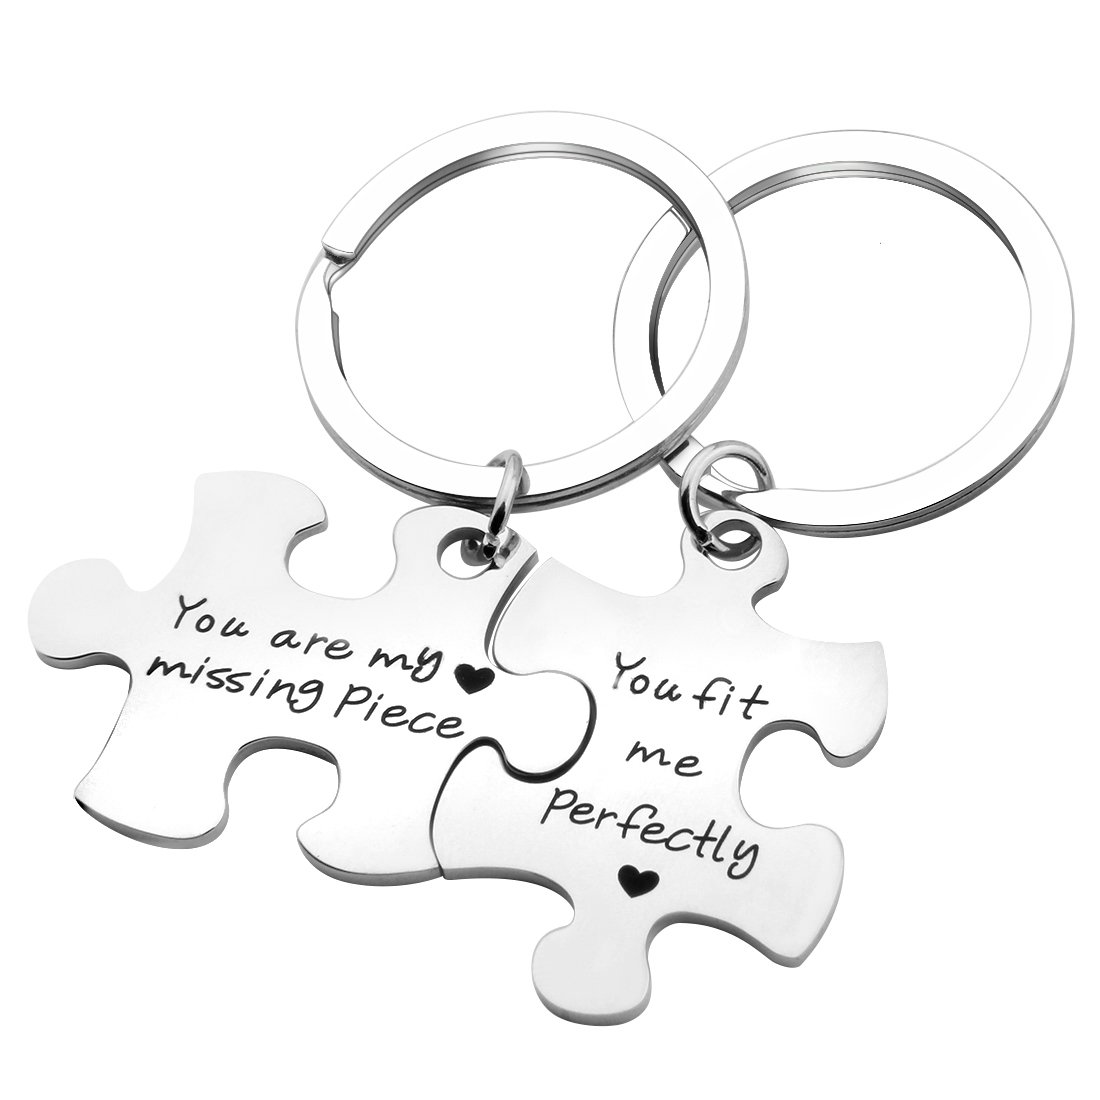 Ensianth Puzzle Jewelry You Are My Missing Piece,You Fit Me Perfectly Necklace and Keyring Set Of Two (Keyring)